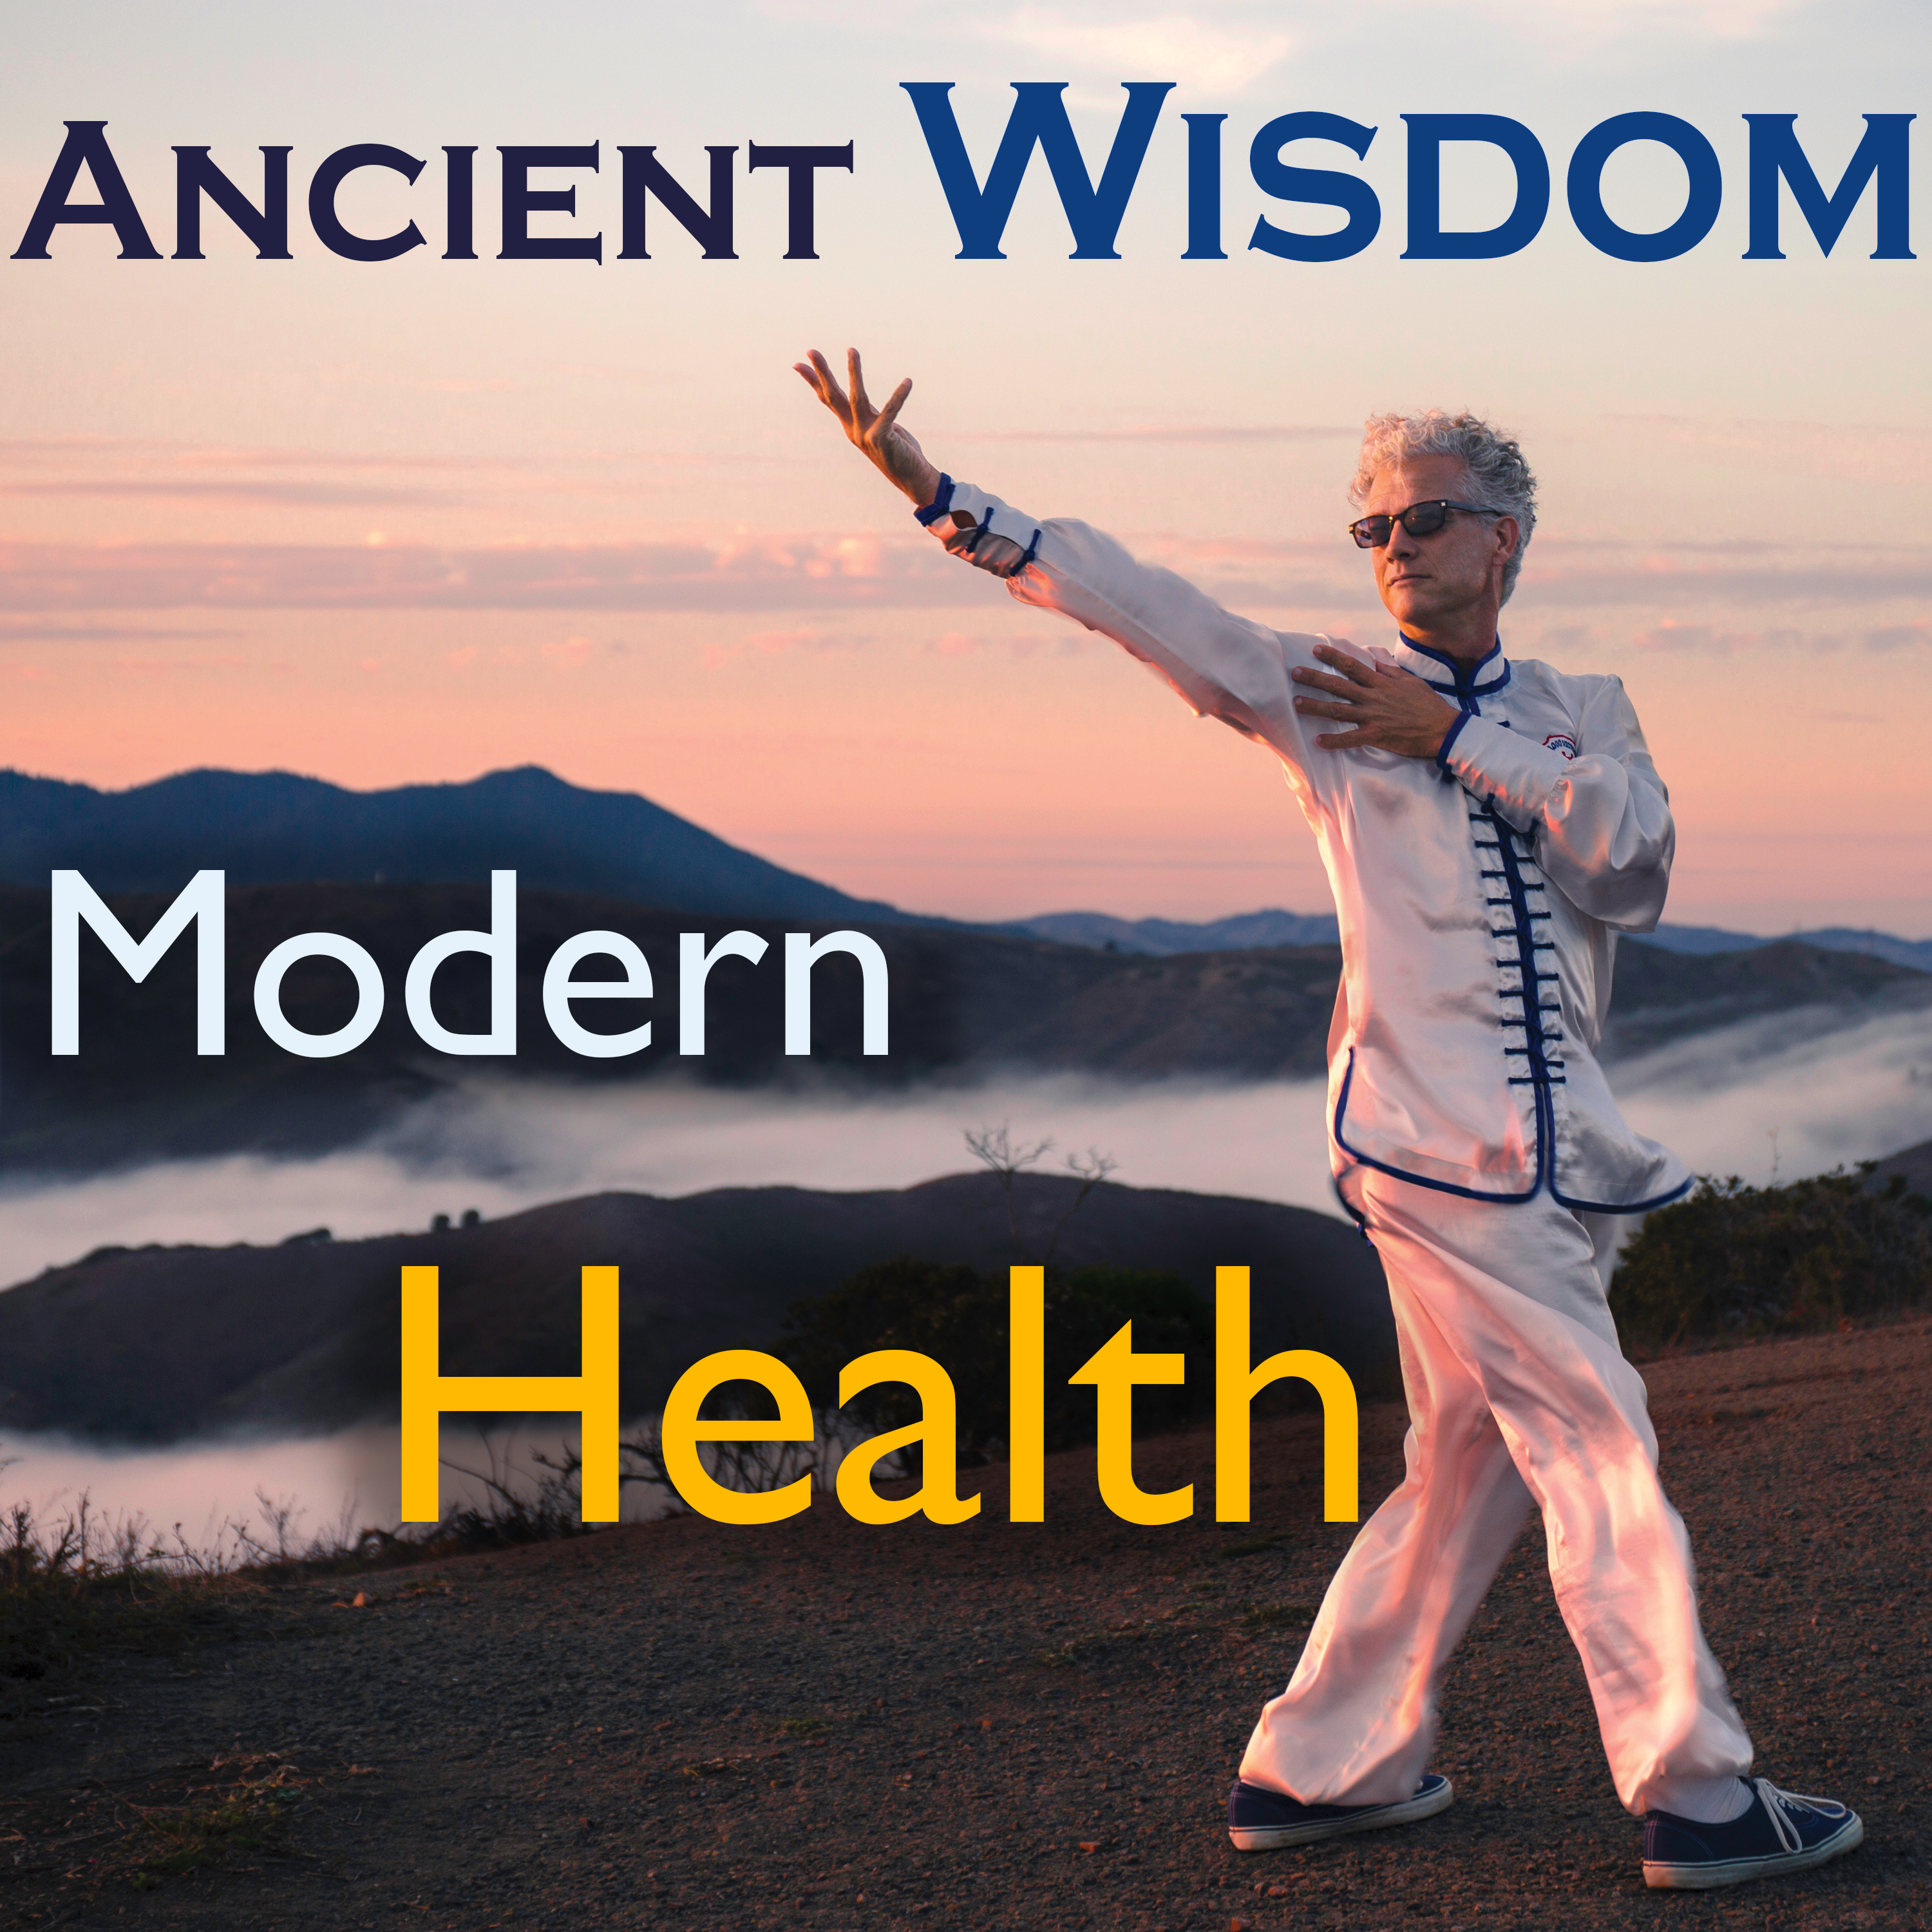 ancient wisdom modern health podcast